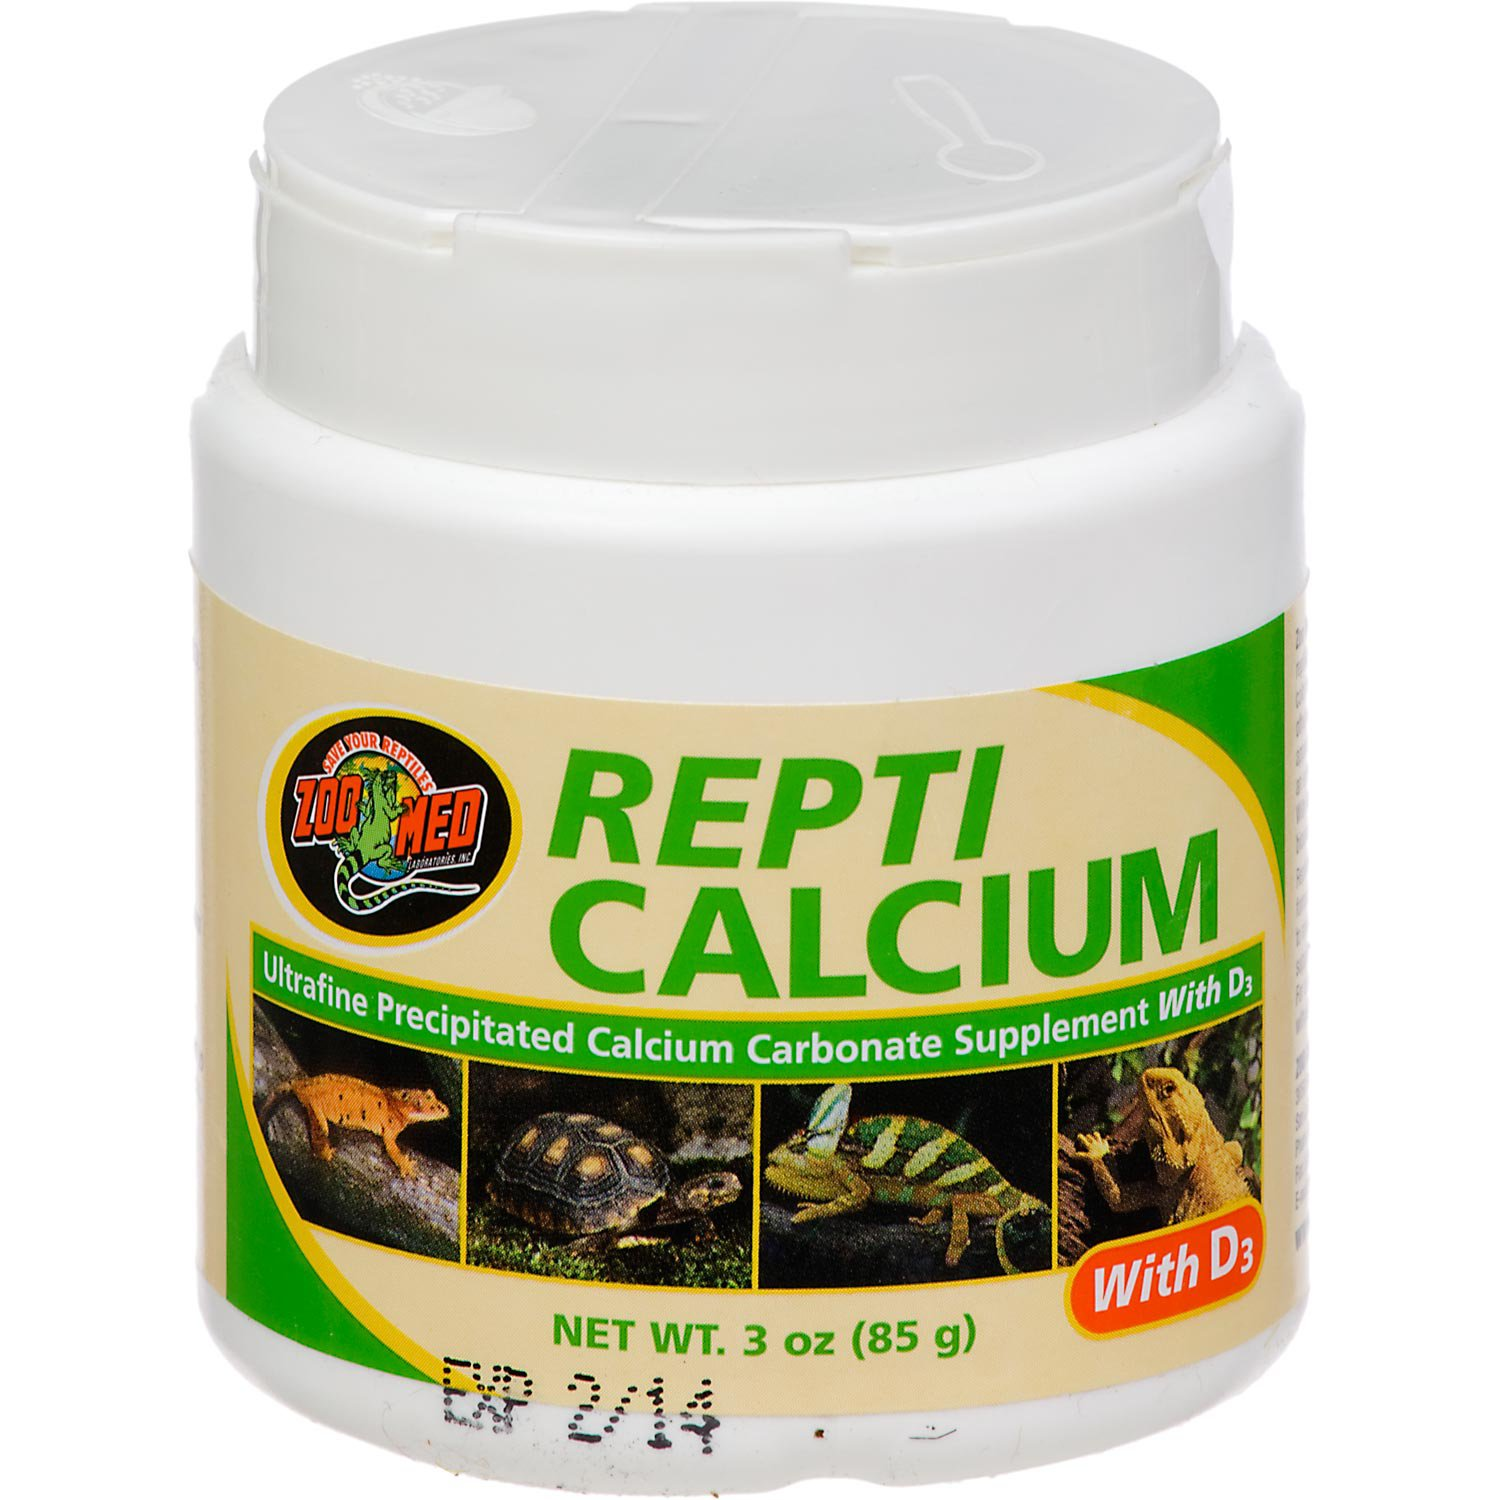 zoo med repti calcium with d3 reptile supplement petco